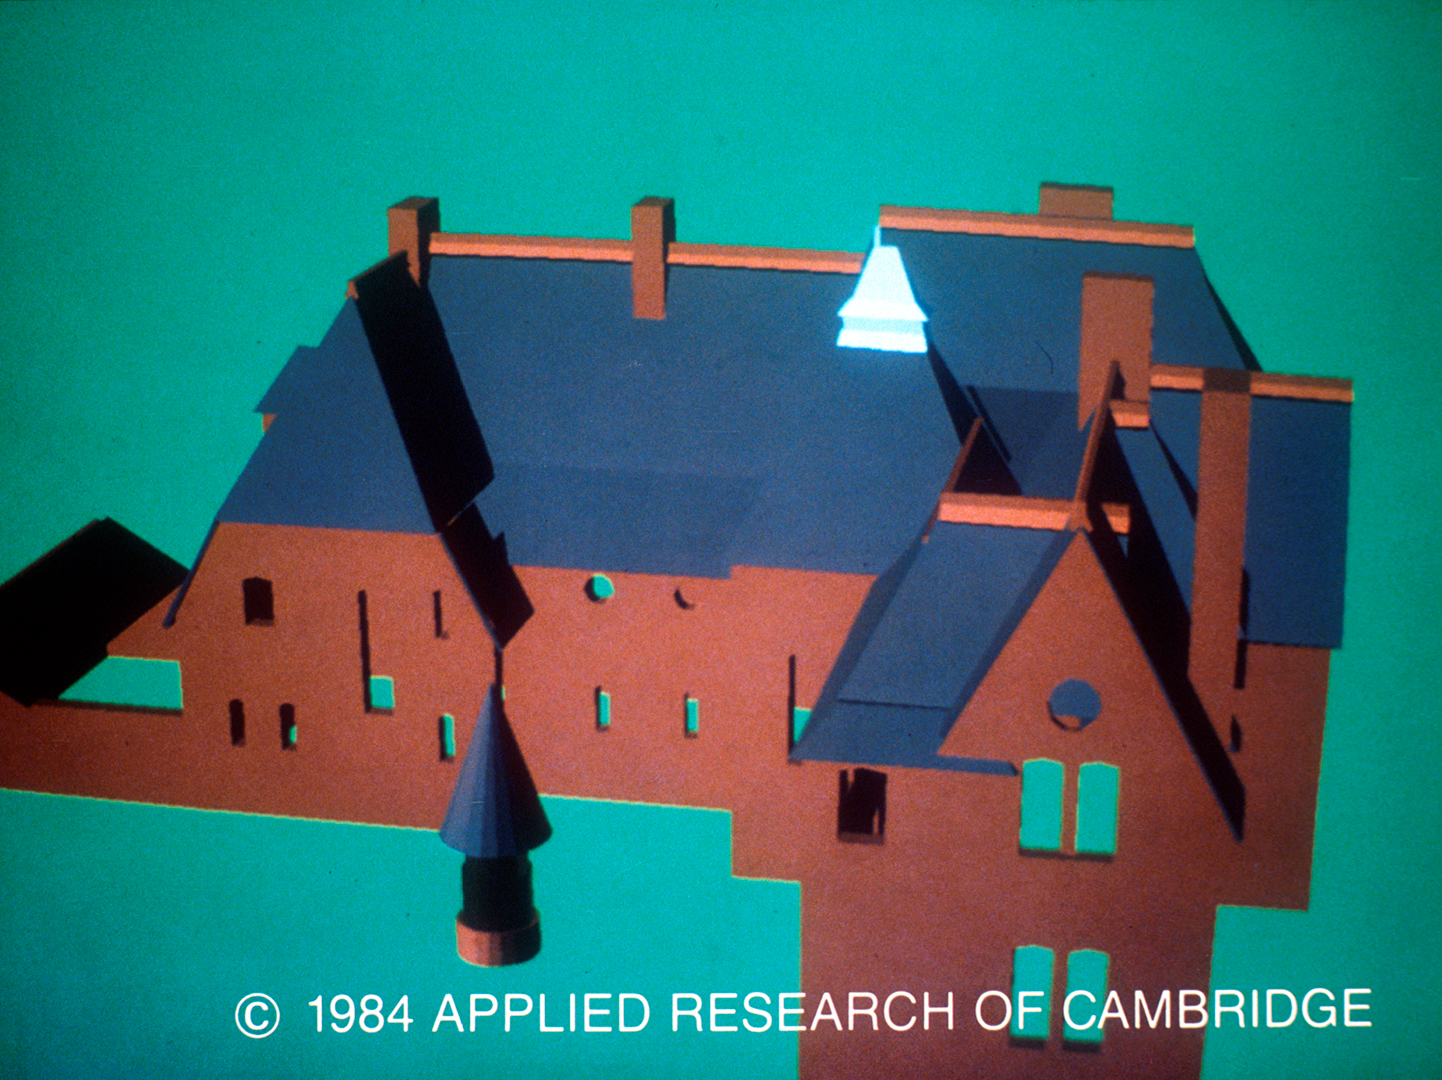 ©, Applied Research of Cambridge, Computer-Generated Image of William Morris' Red House